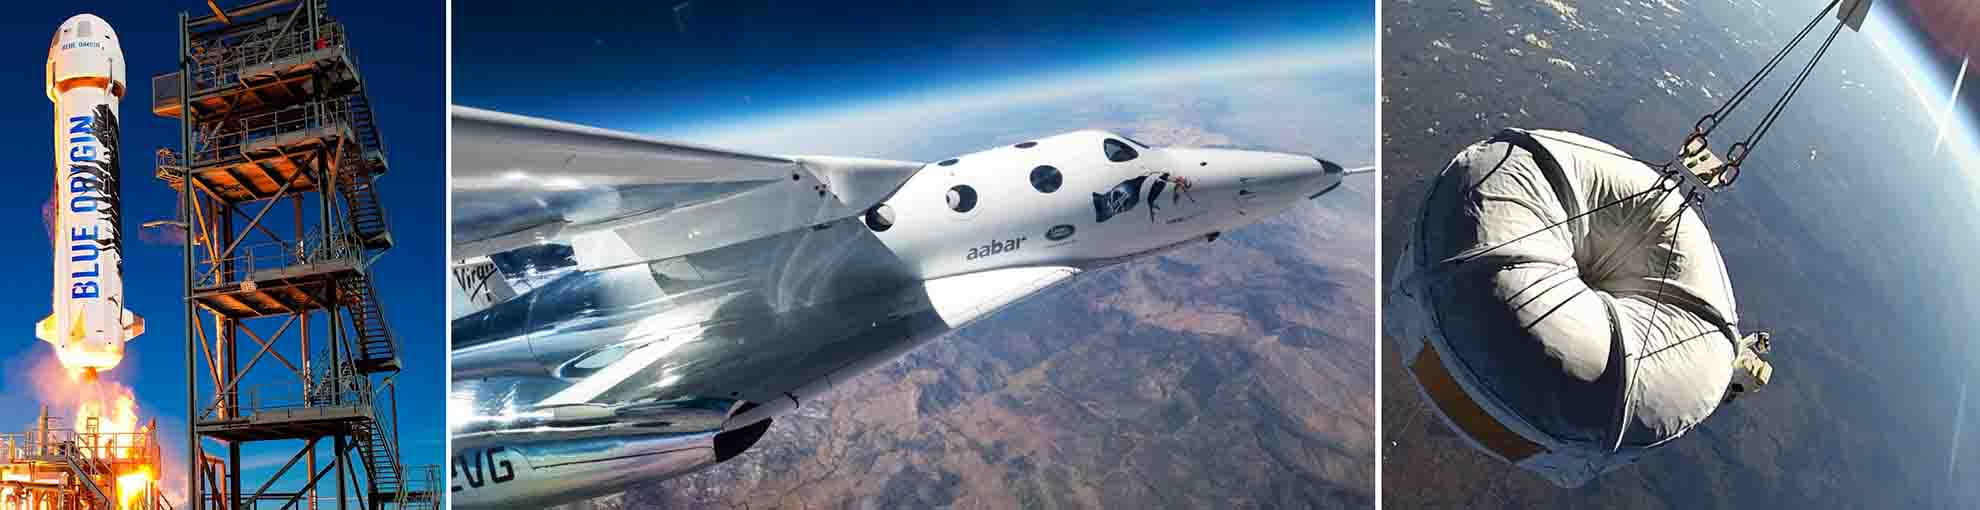 Prototypes for outer space tourism vehicles